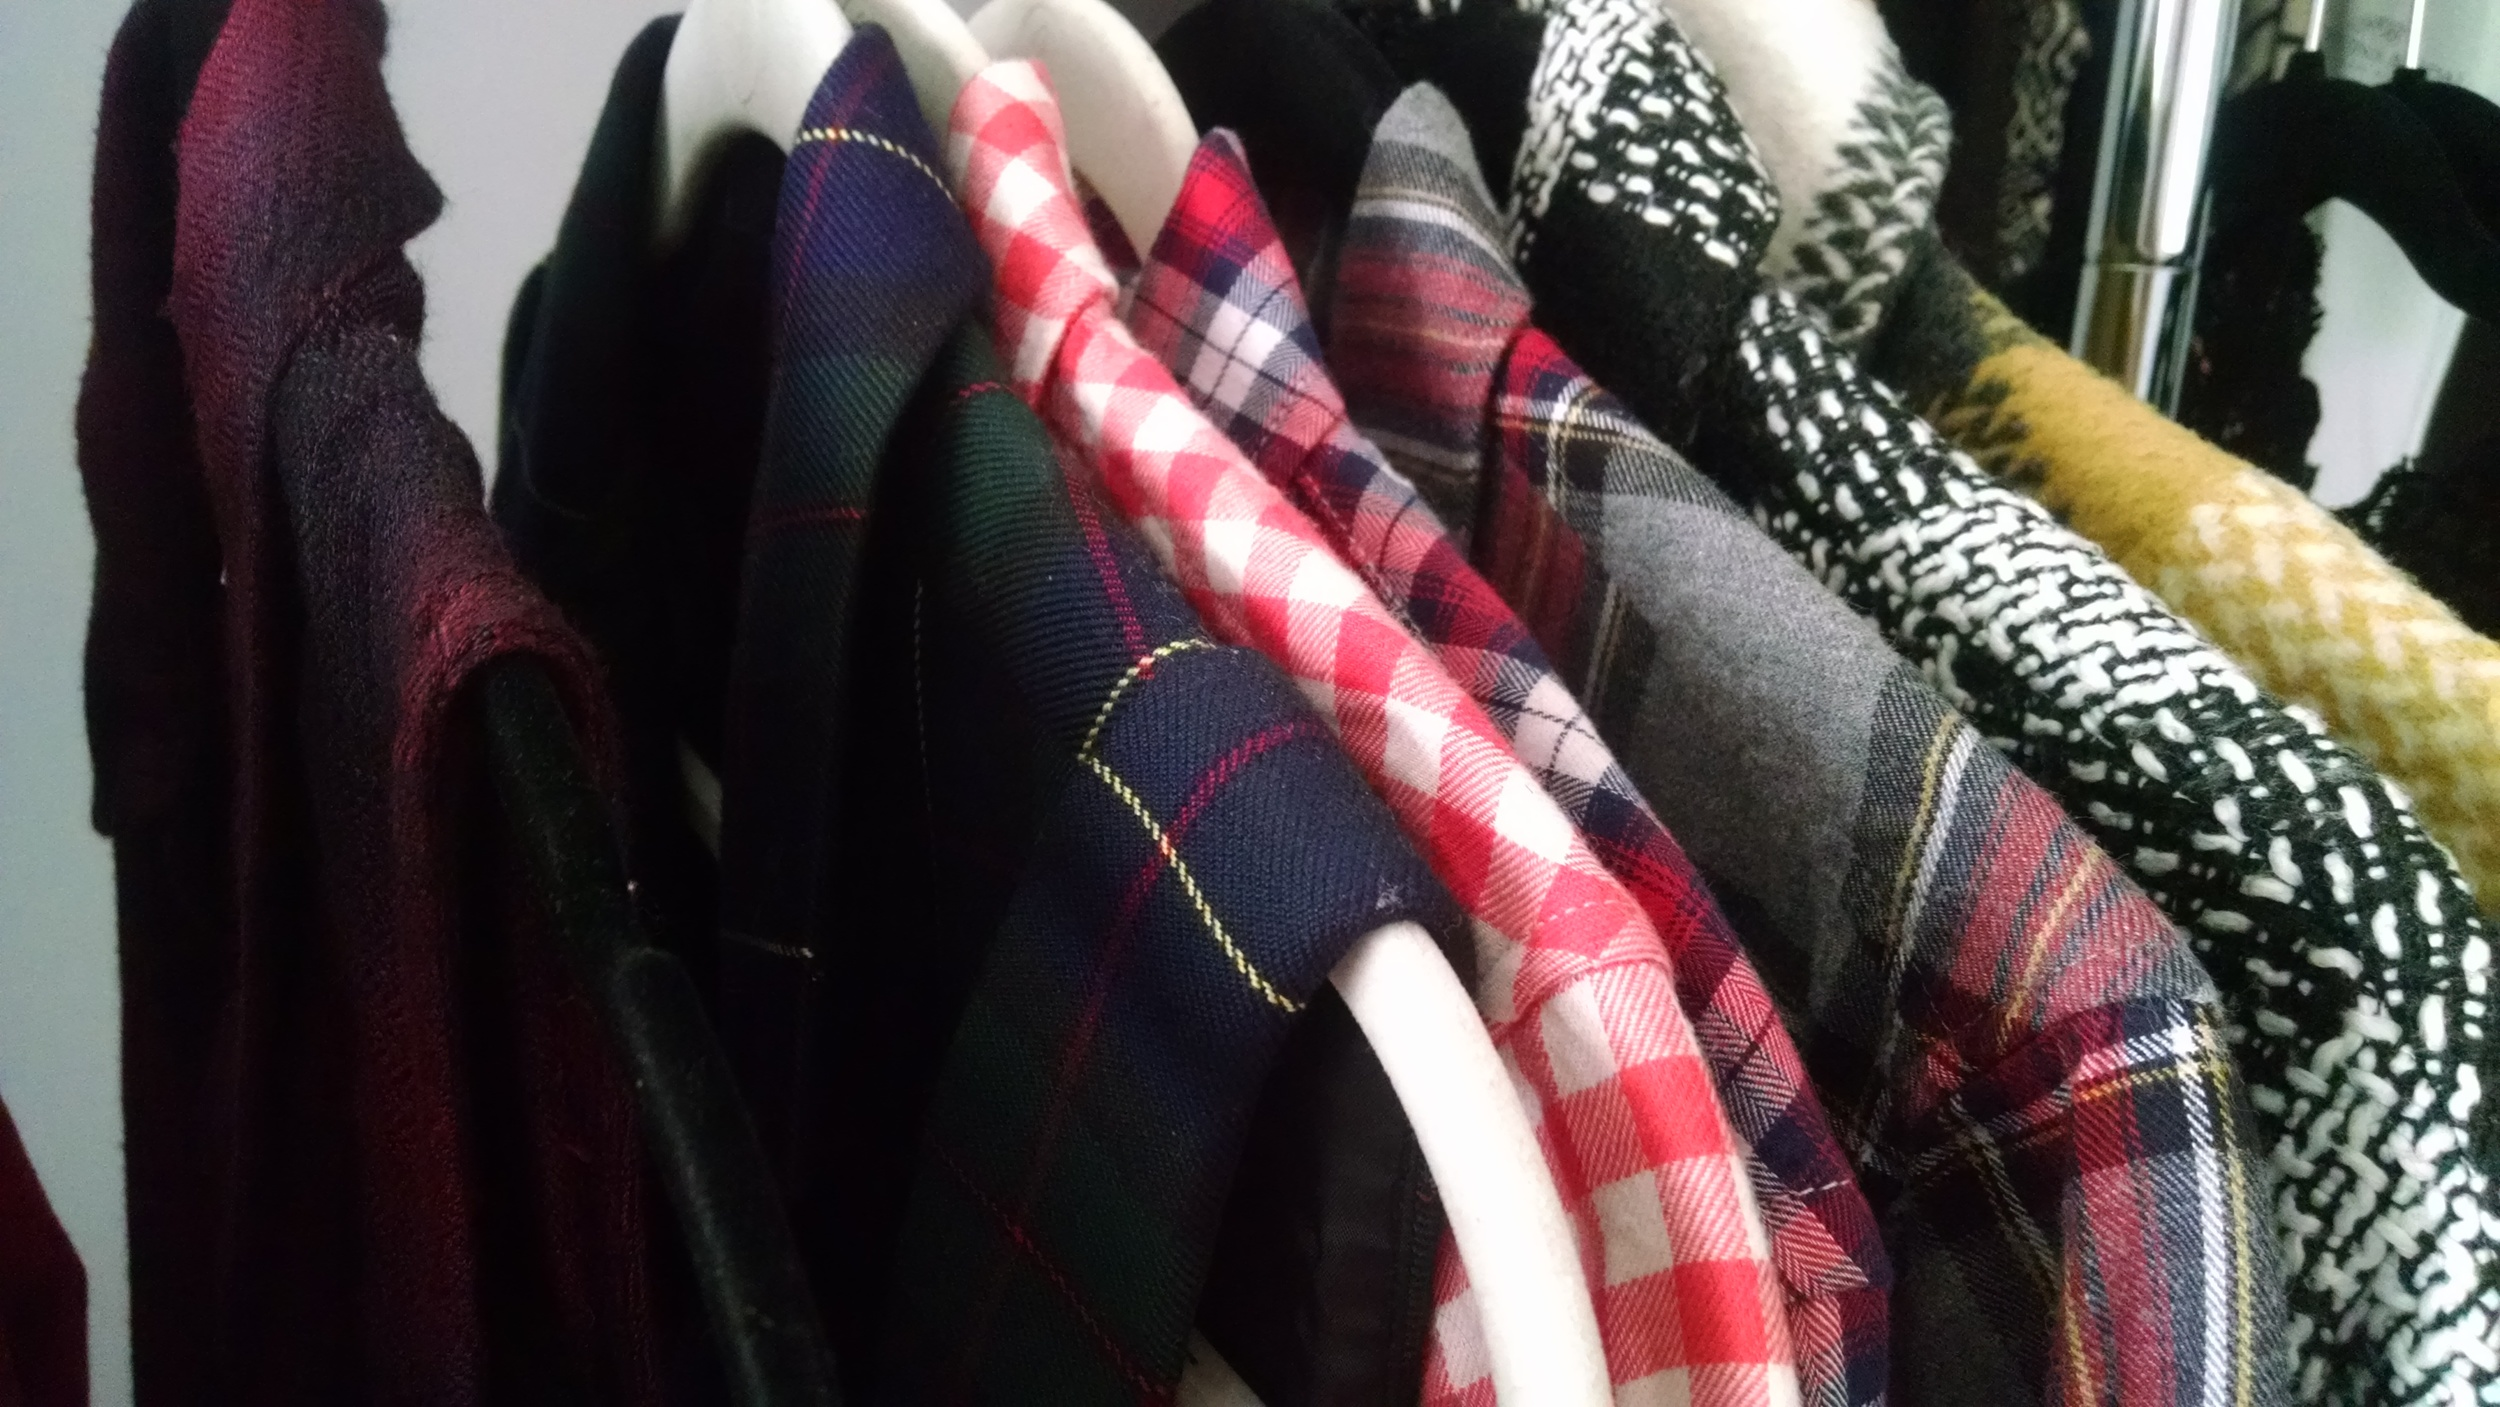 plaid shirt line-up